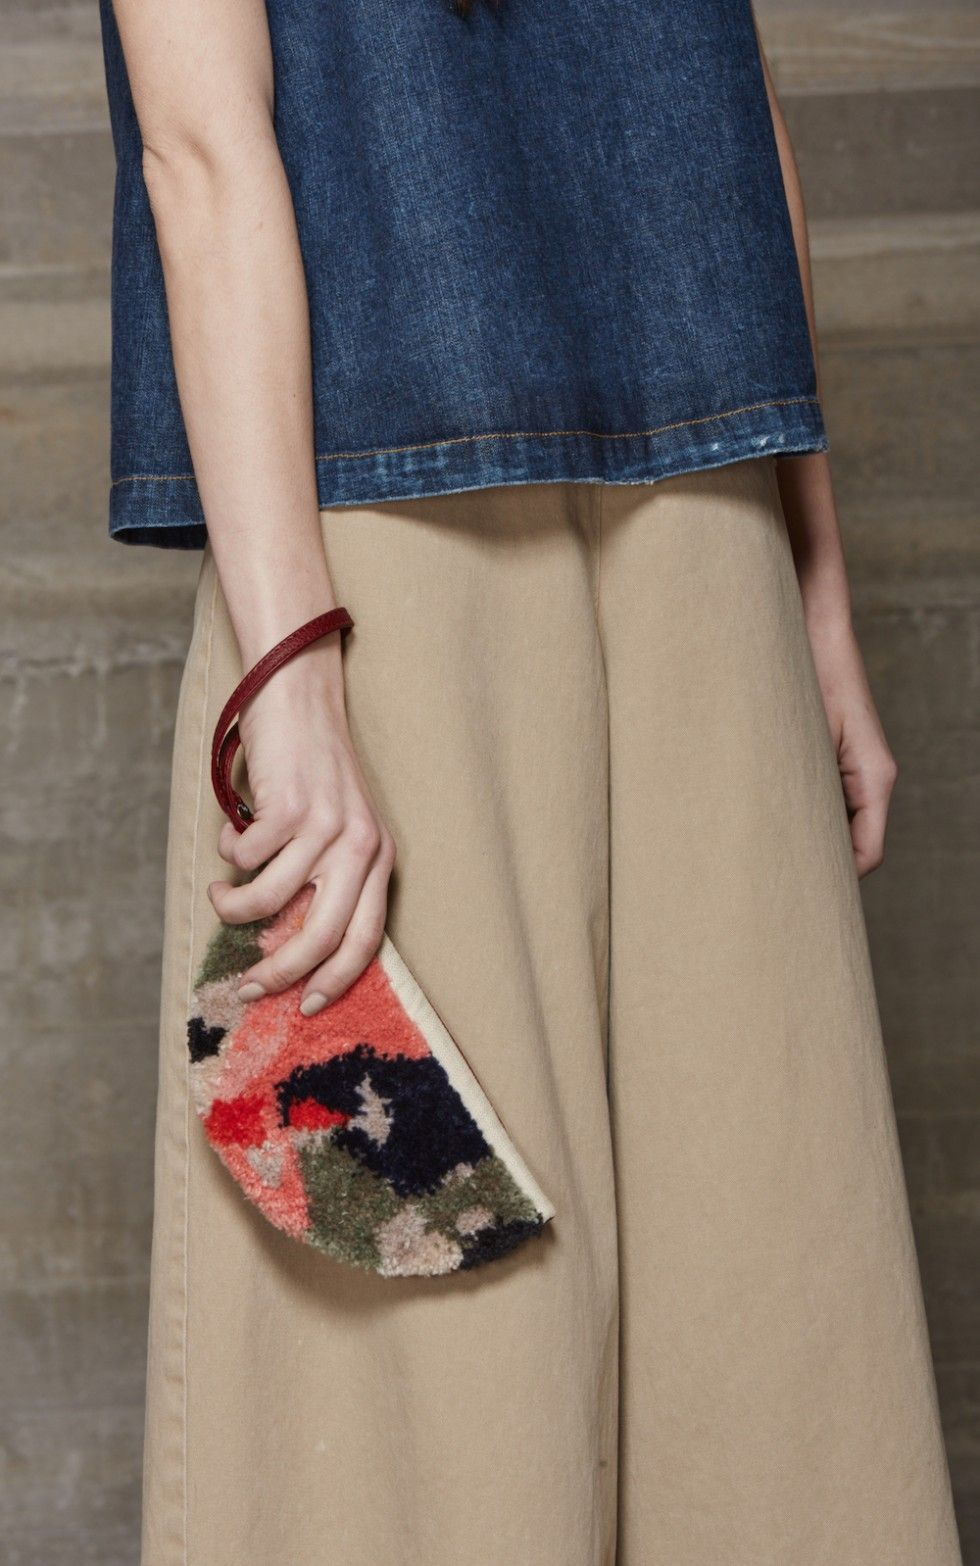 Statement Clutch - RUNWAY by VIDA VIDA 3alSkEs6Bq